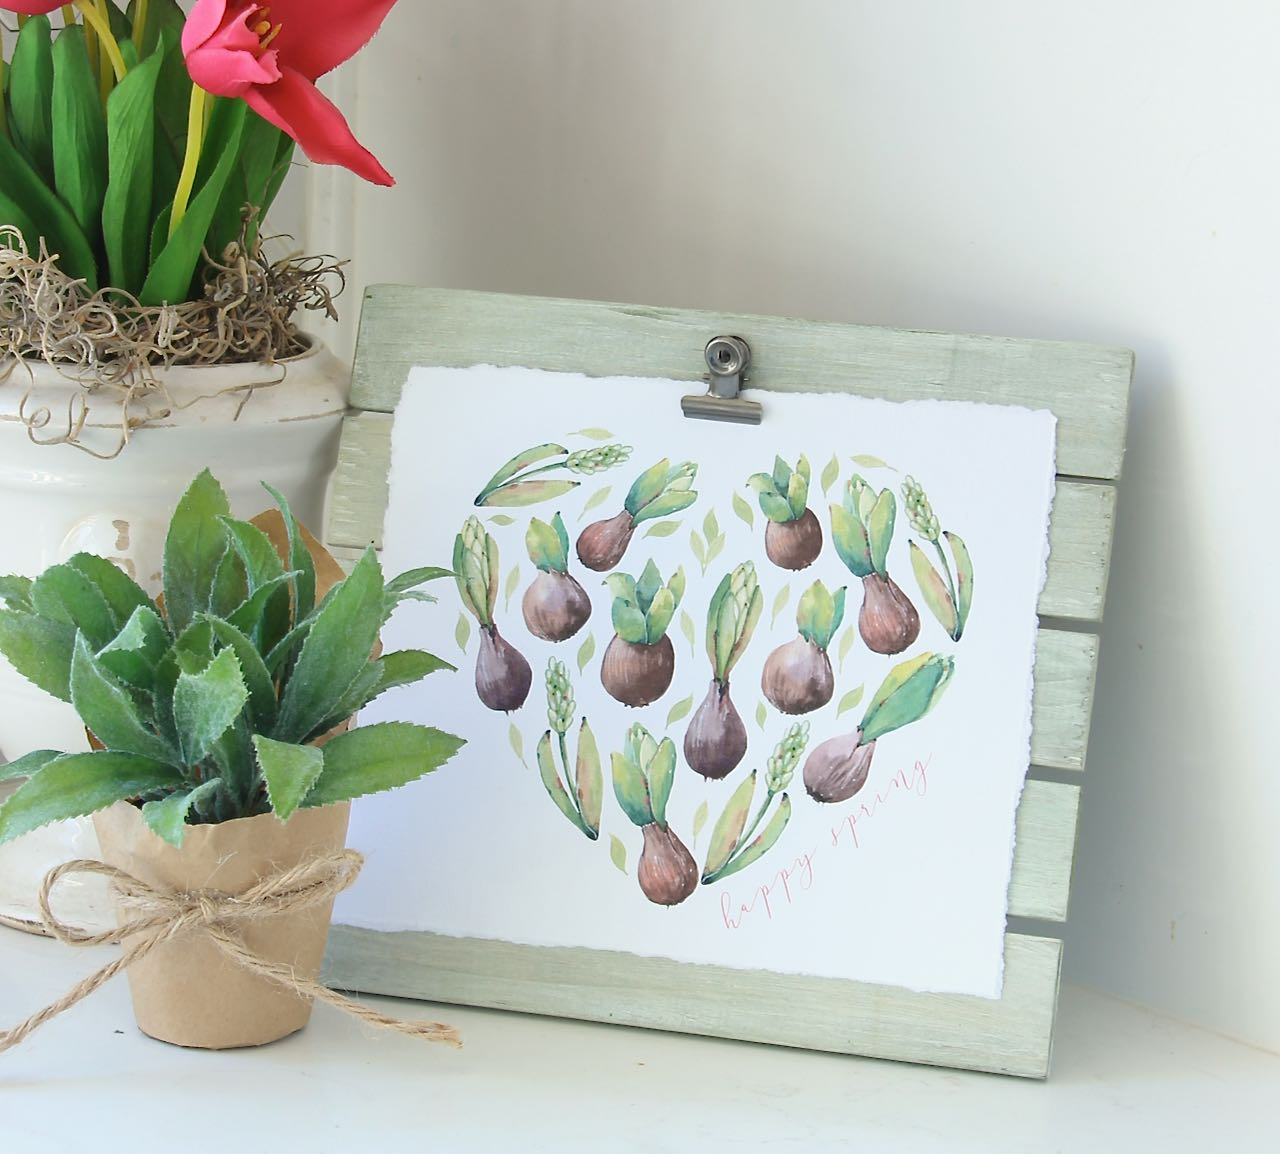 Heart shape filled with sprouting bulbs and leaves on the green washed easel